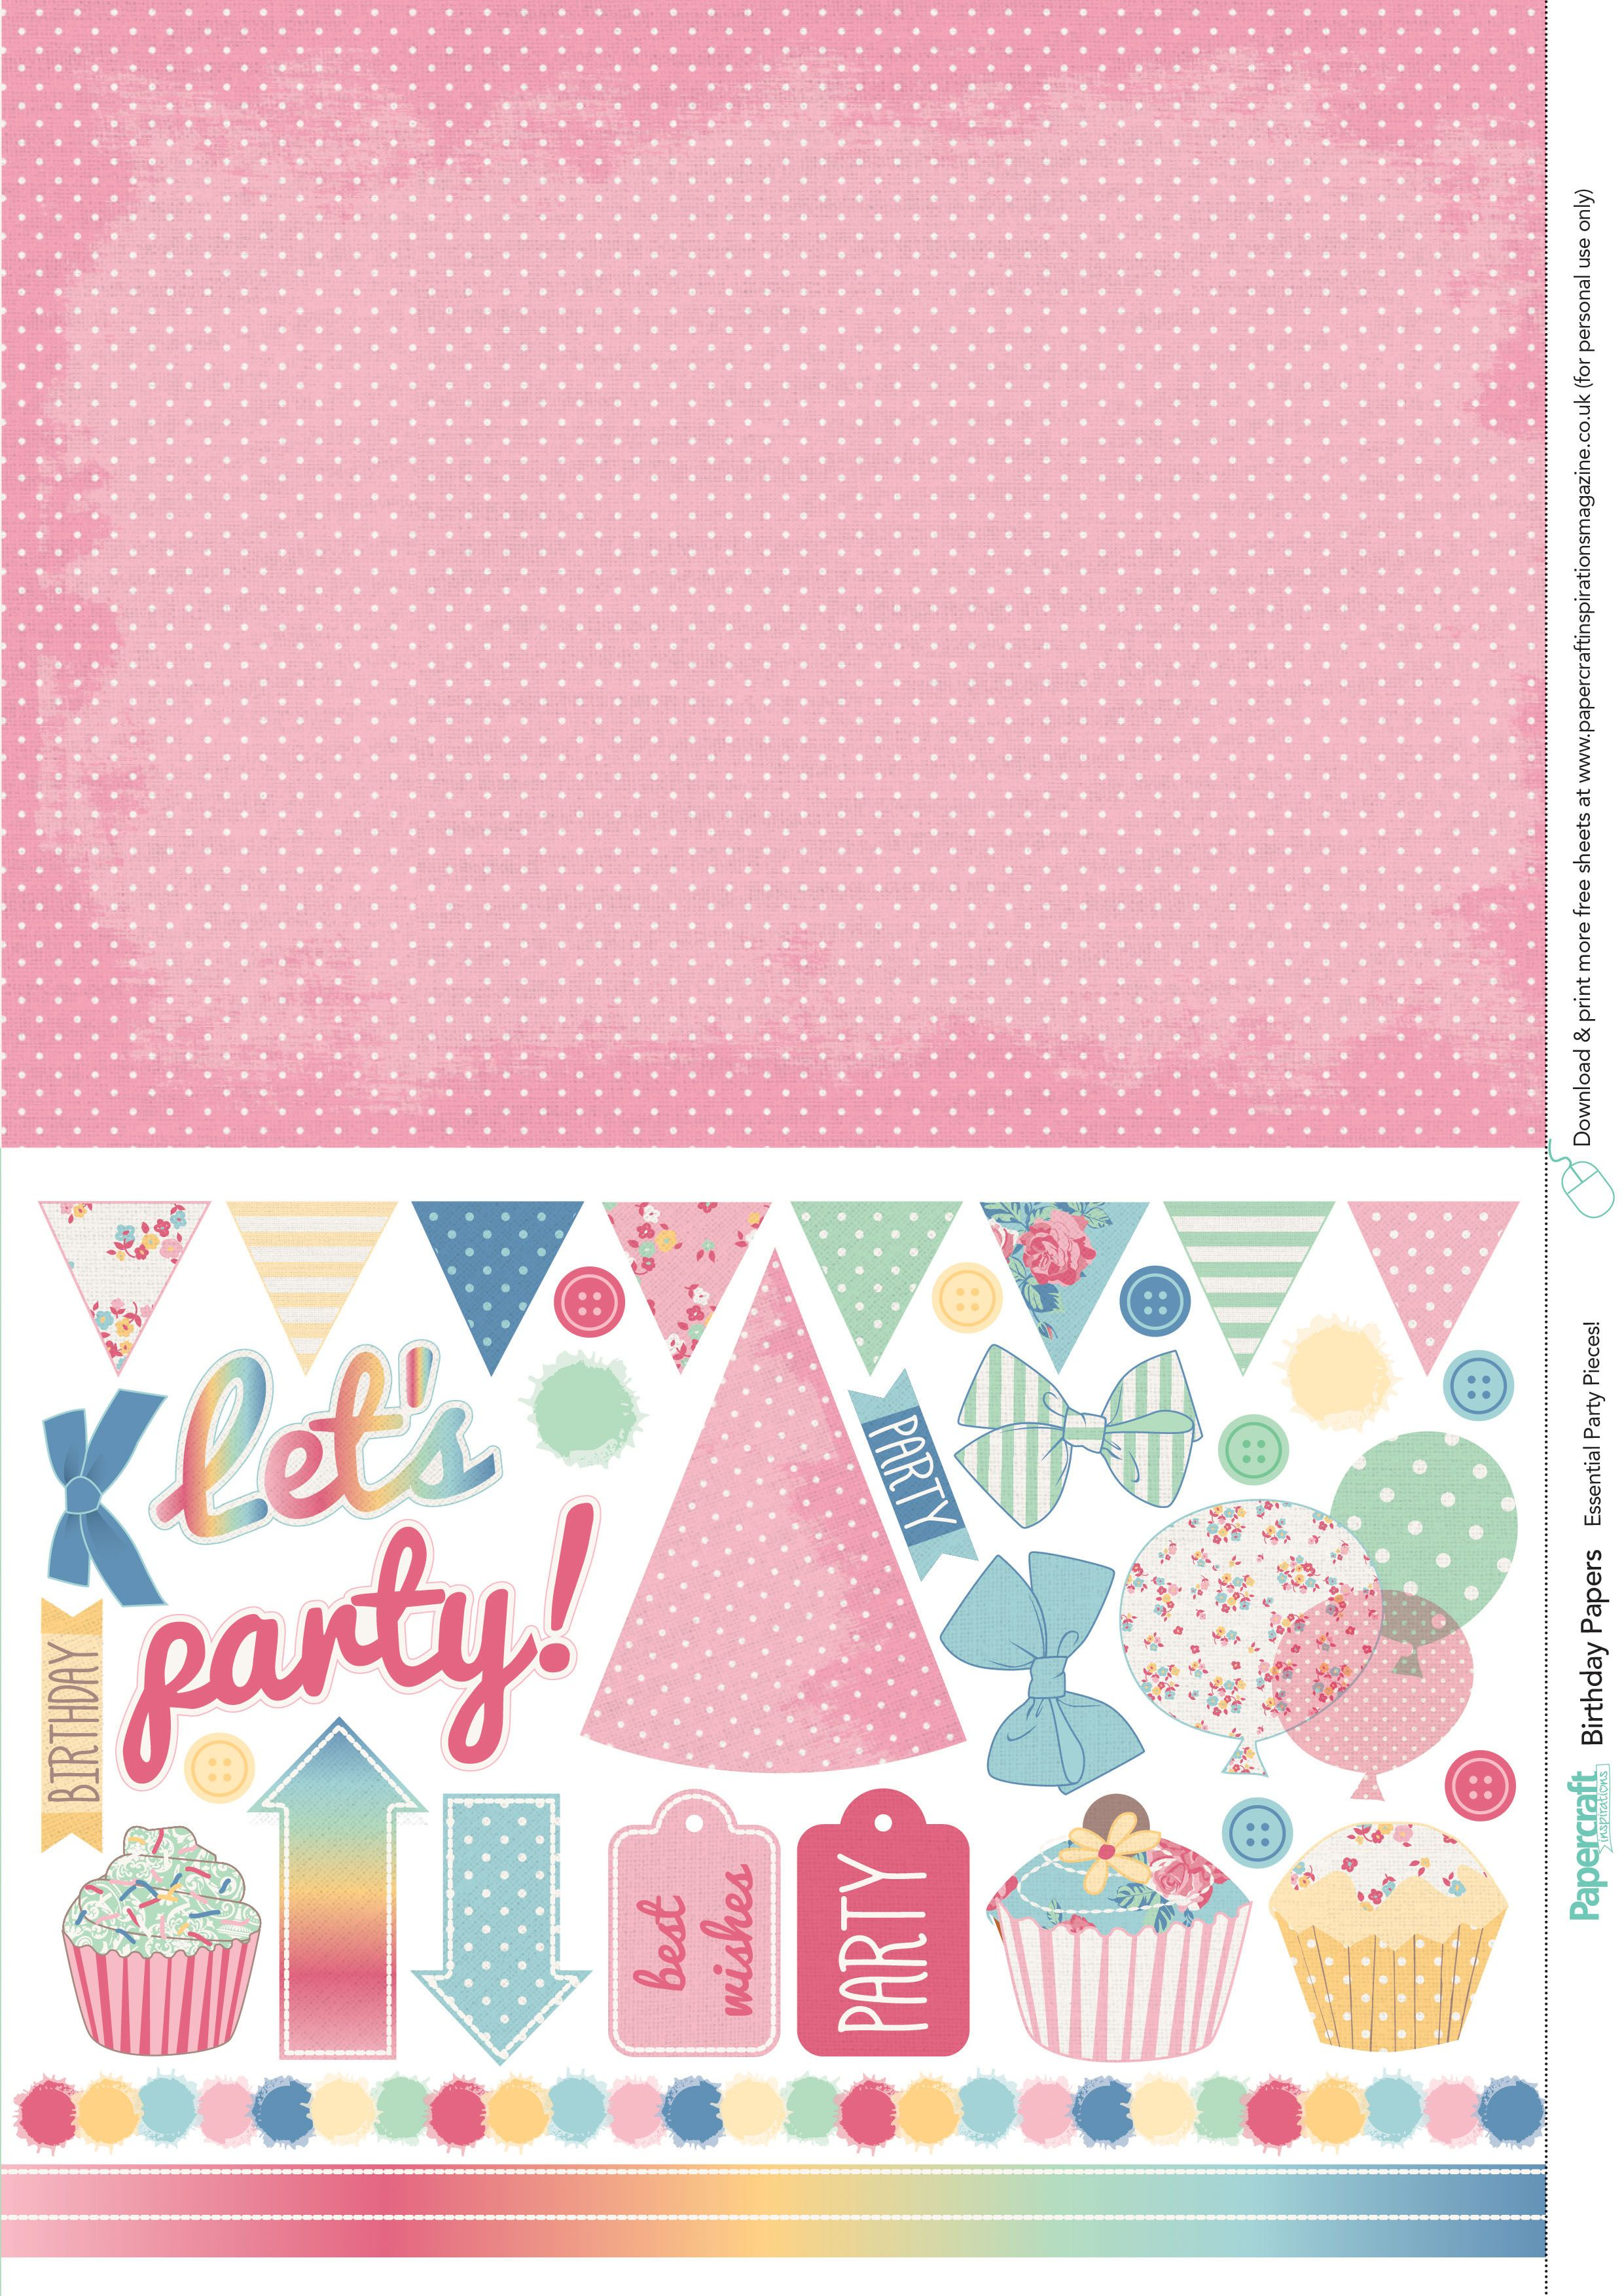 Wednesday s Guest Freebies Papercraft Inspirations ✿ Follow the